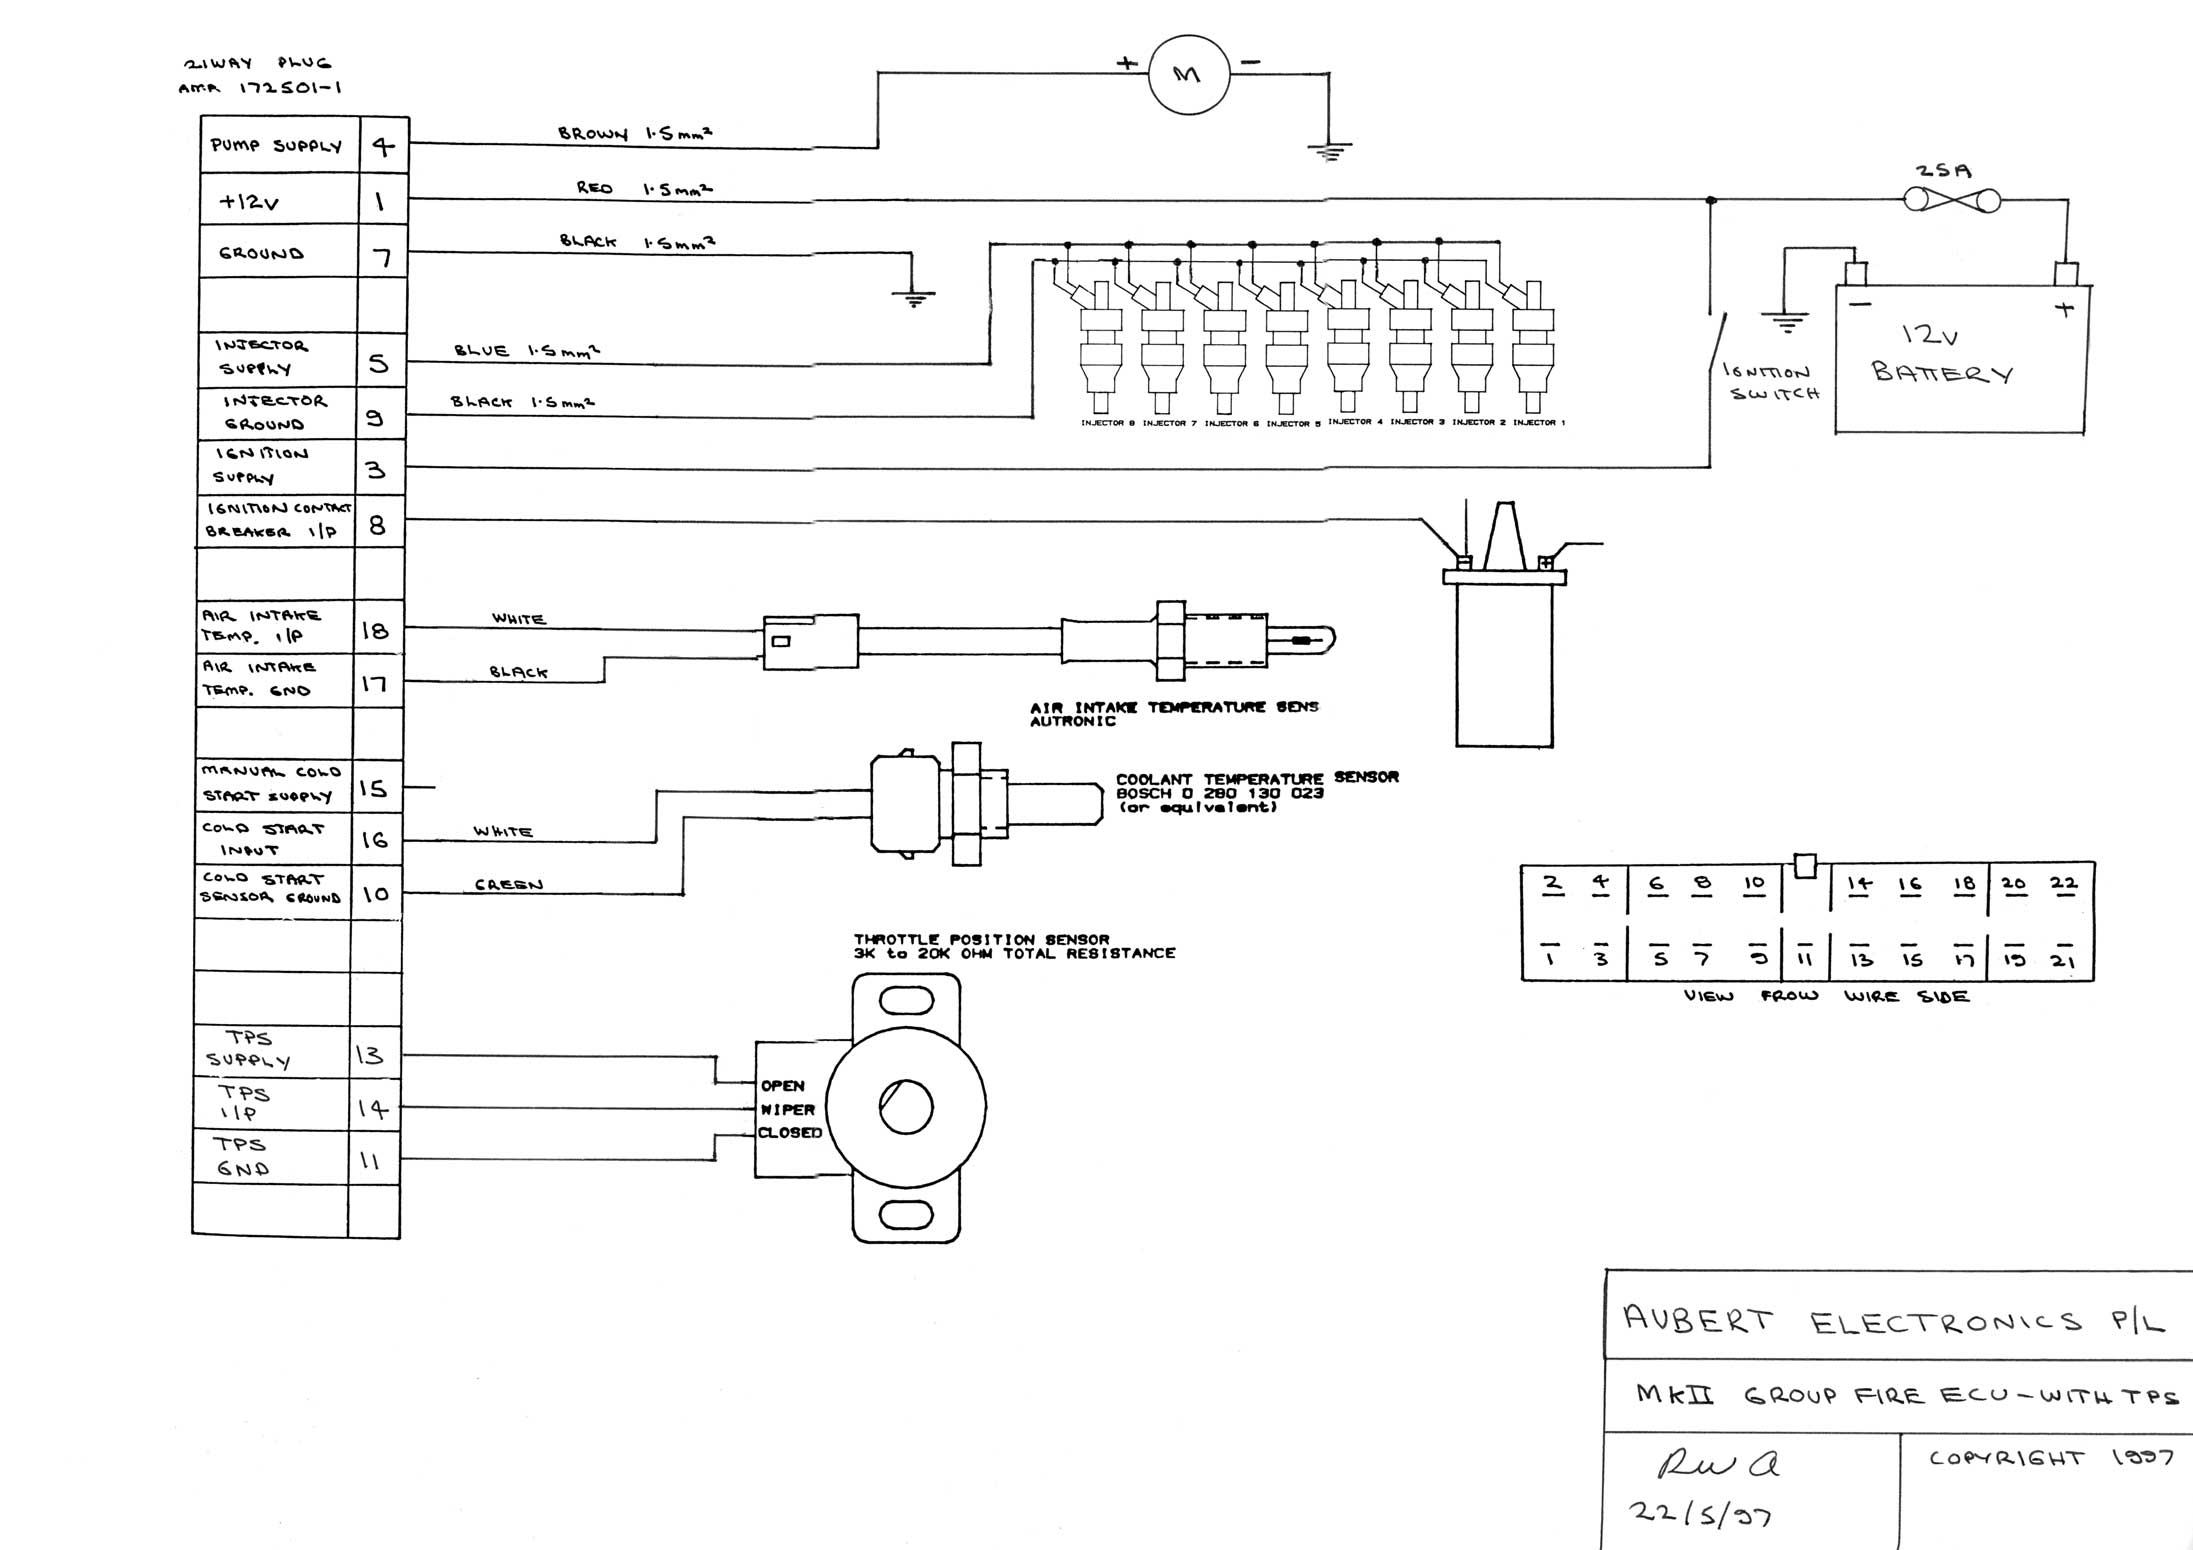 Wiring Diagram Page on air engine diagram, air clutch diagram, transmission diagram, air torque diagram, air mixture diagram, air density diagram,